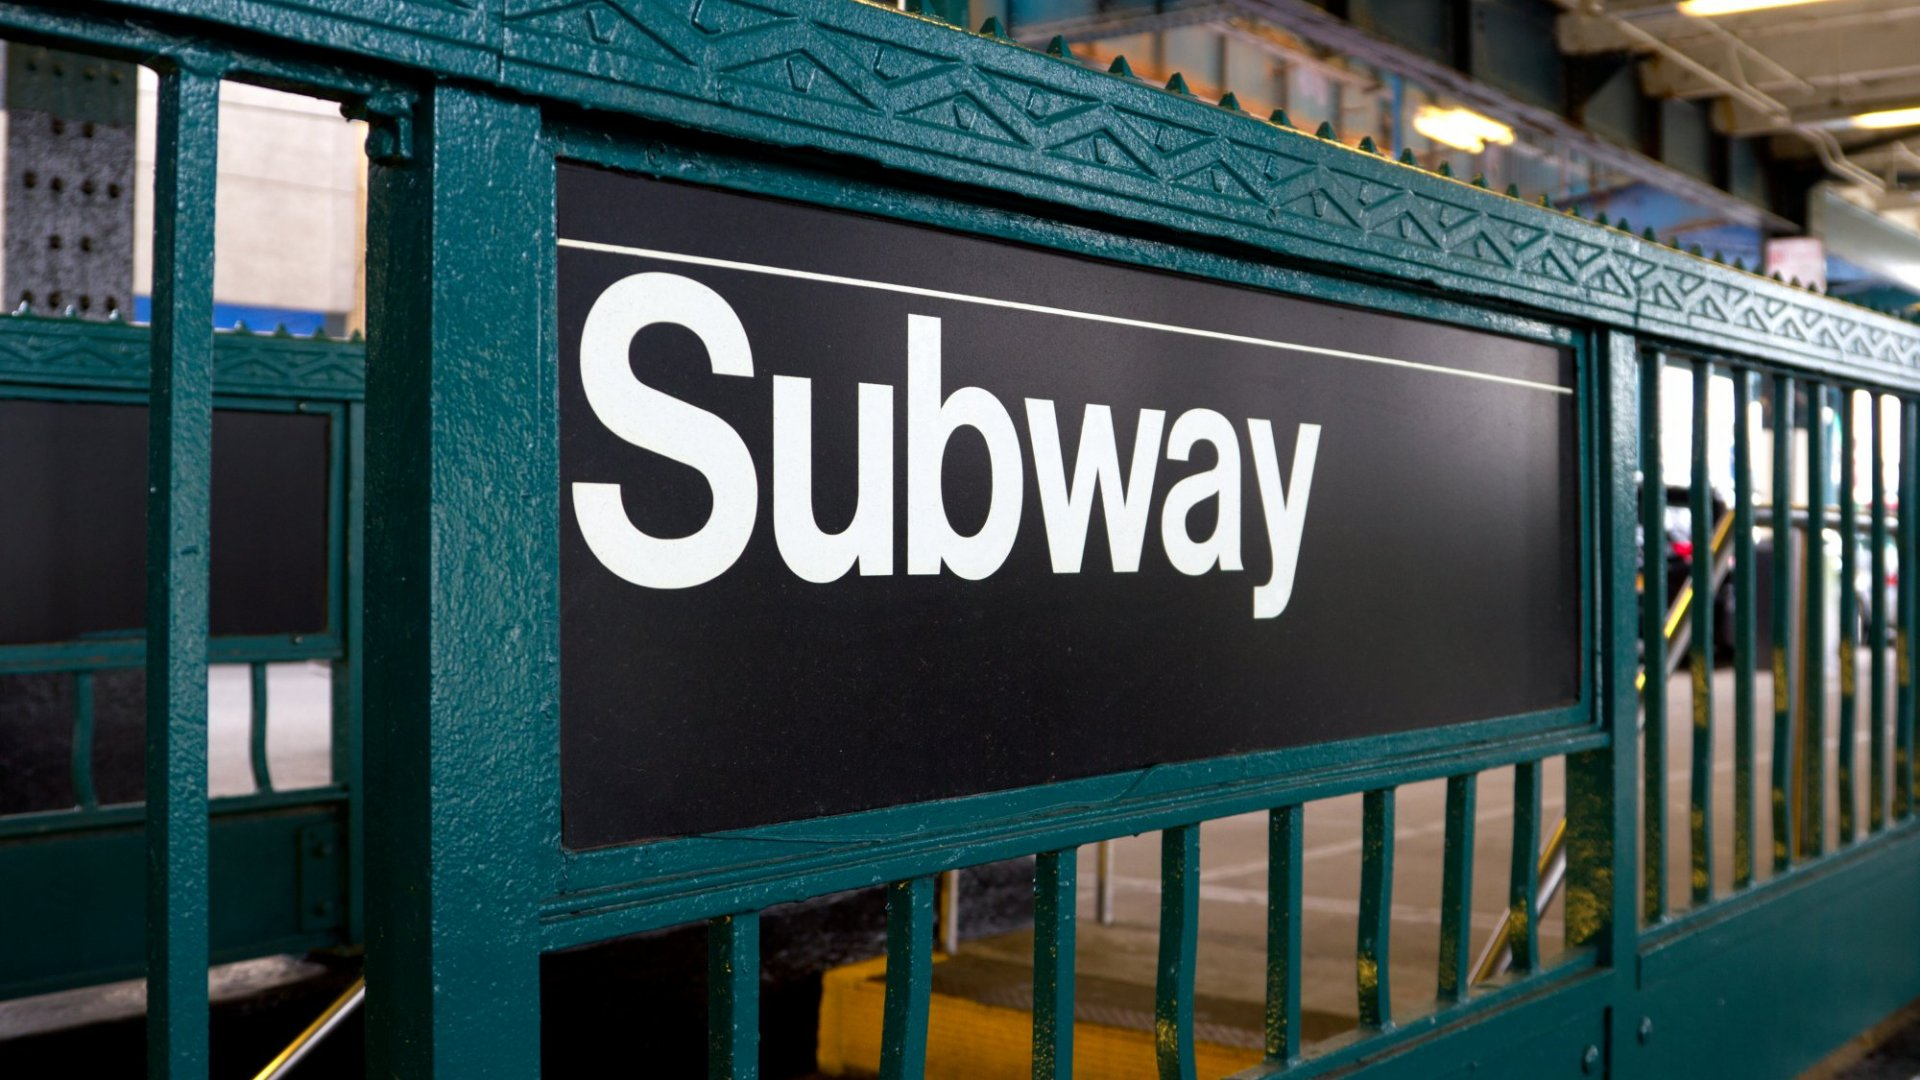 All New York City Underground Subway Stations Now Offer Free WiFi